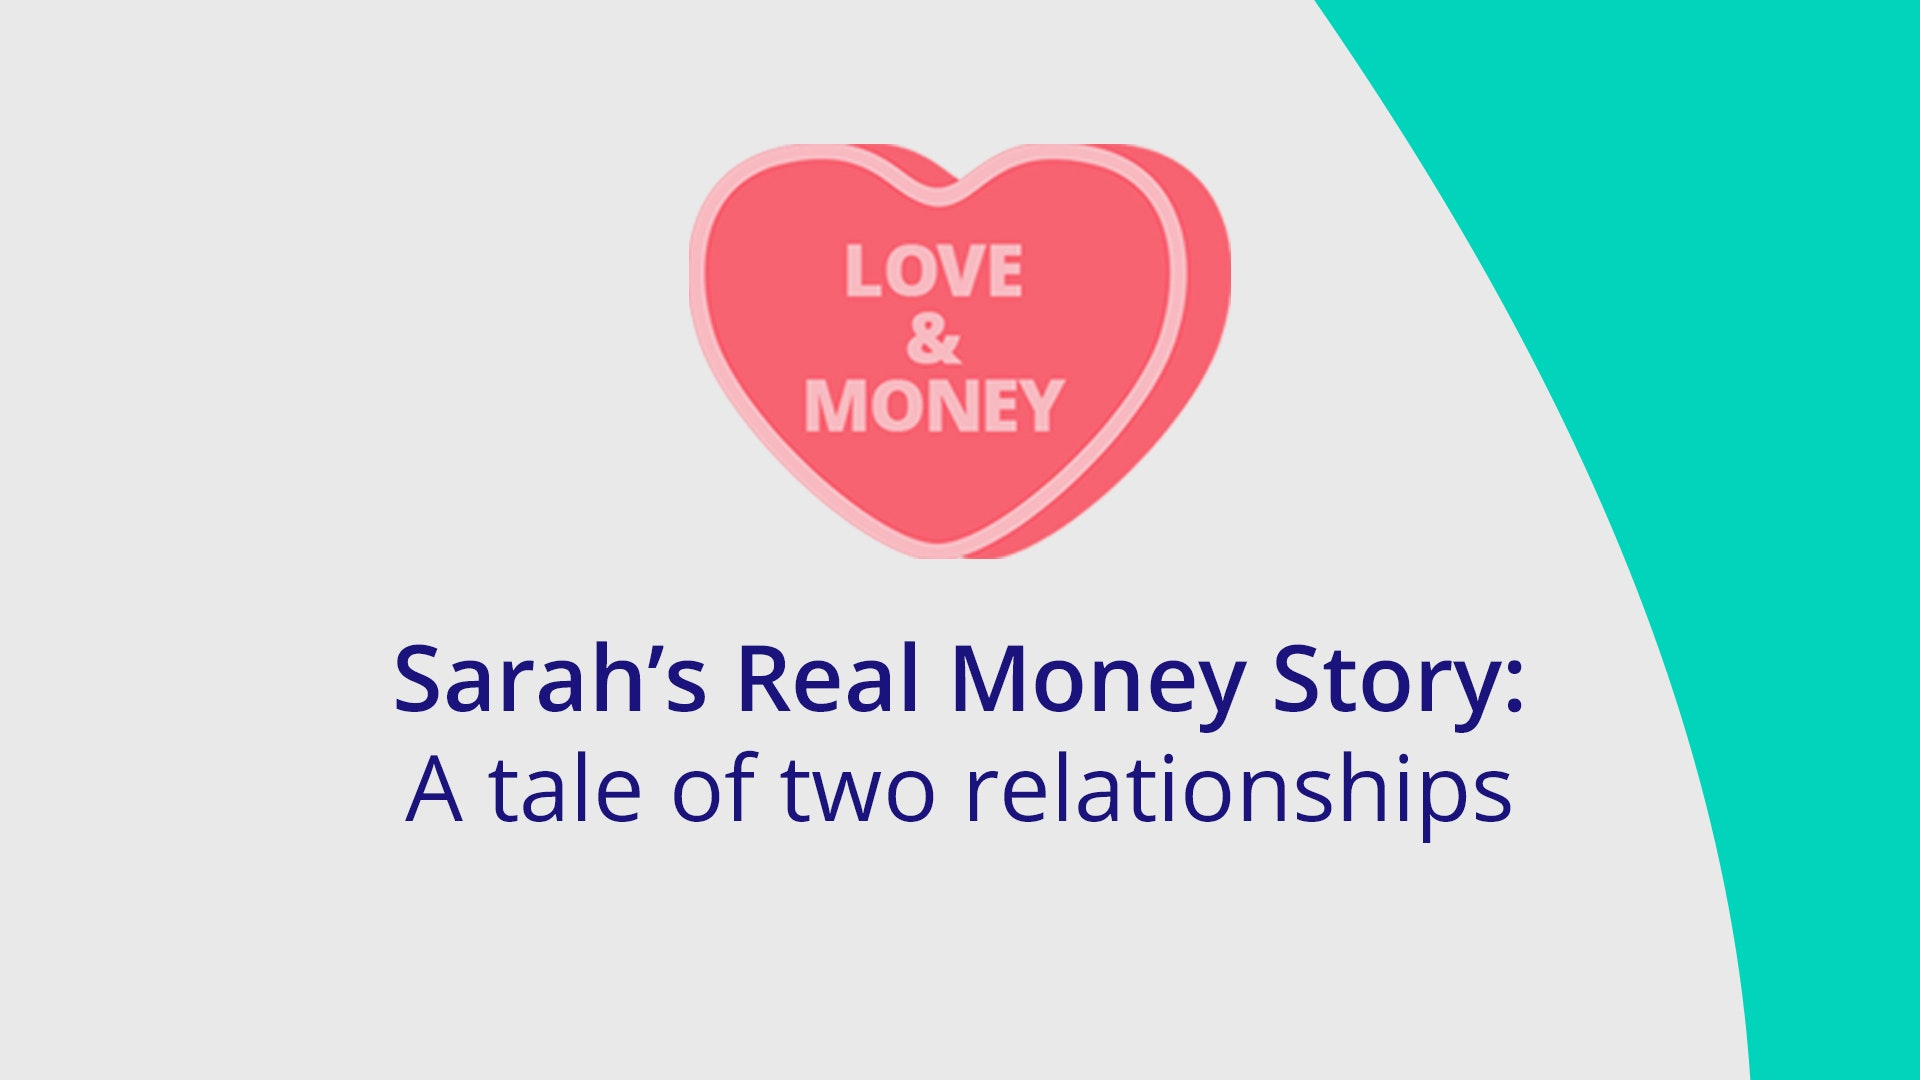 sarah-s-real-money-story-a-tale-of-two-relationships